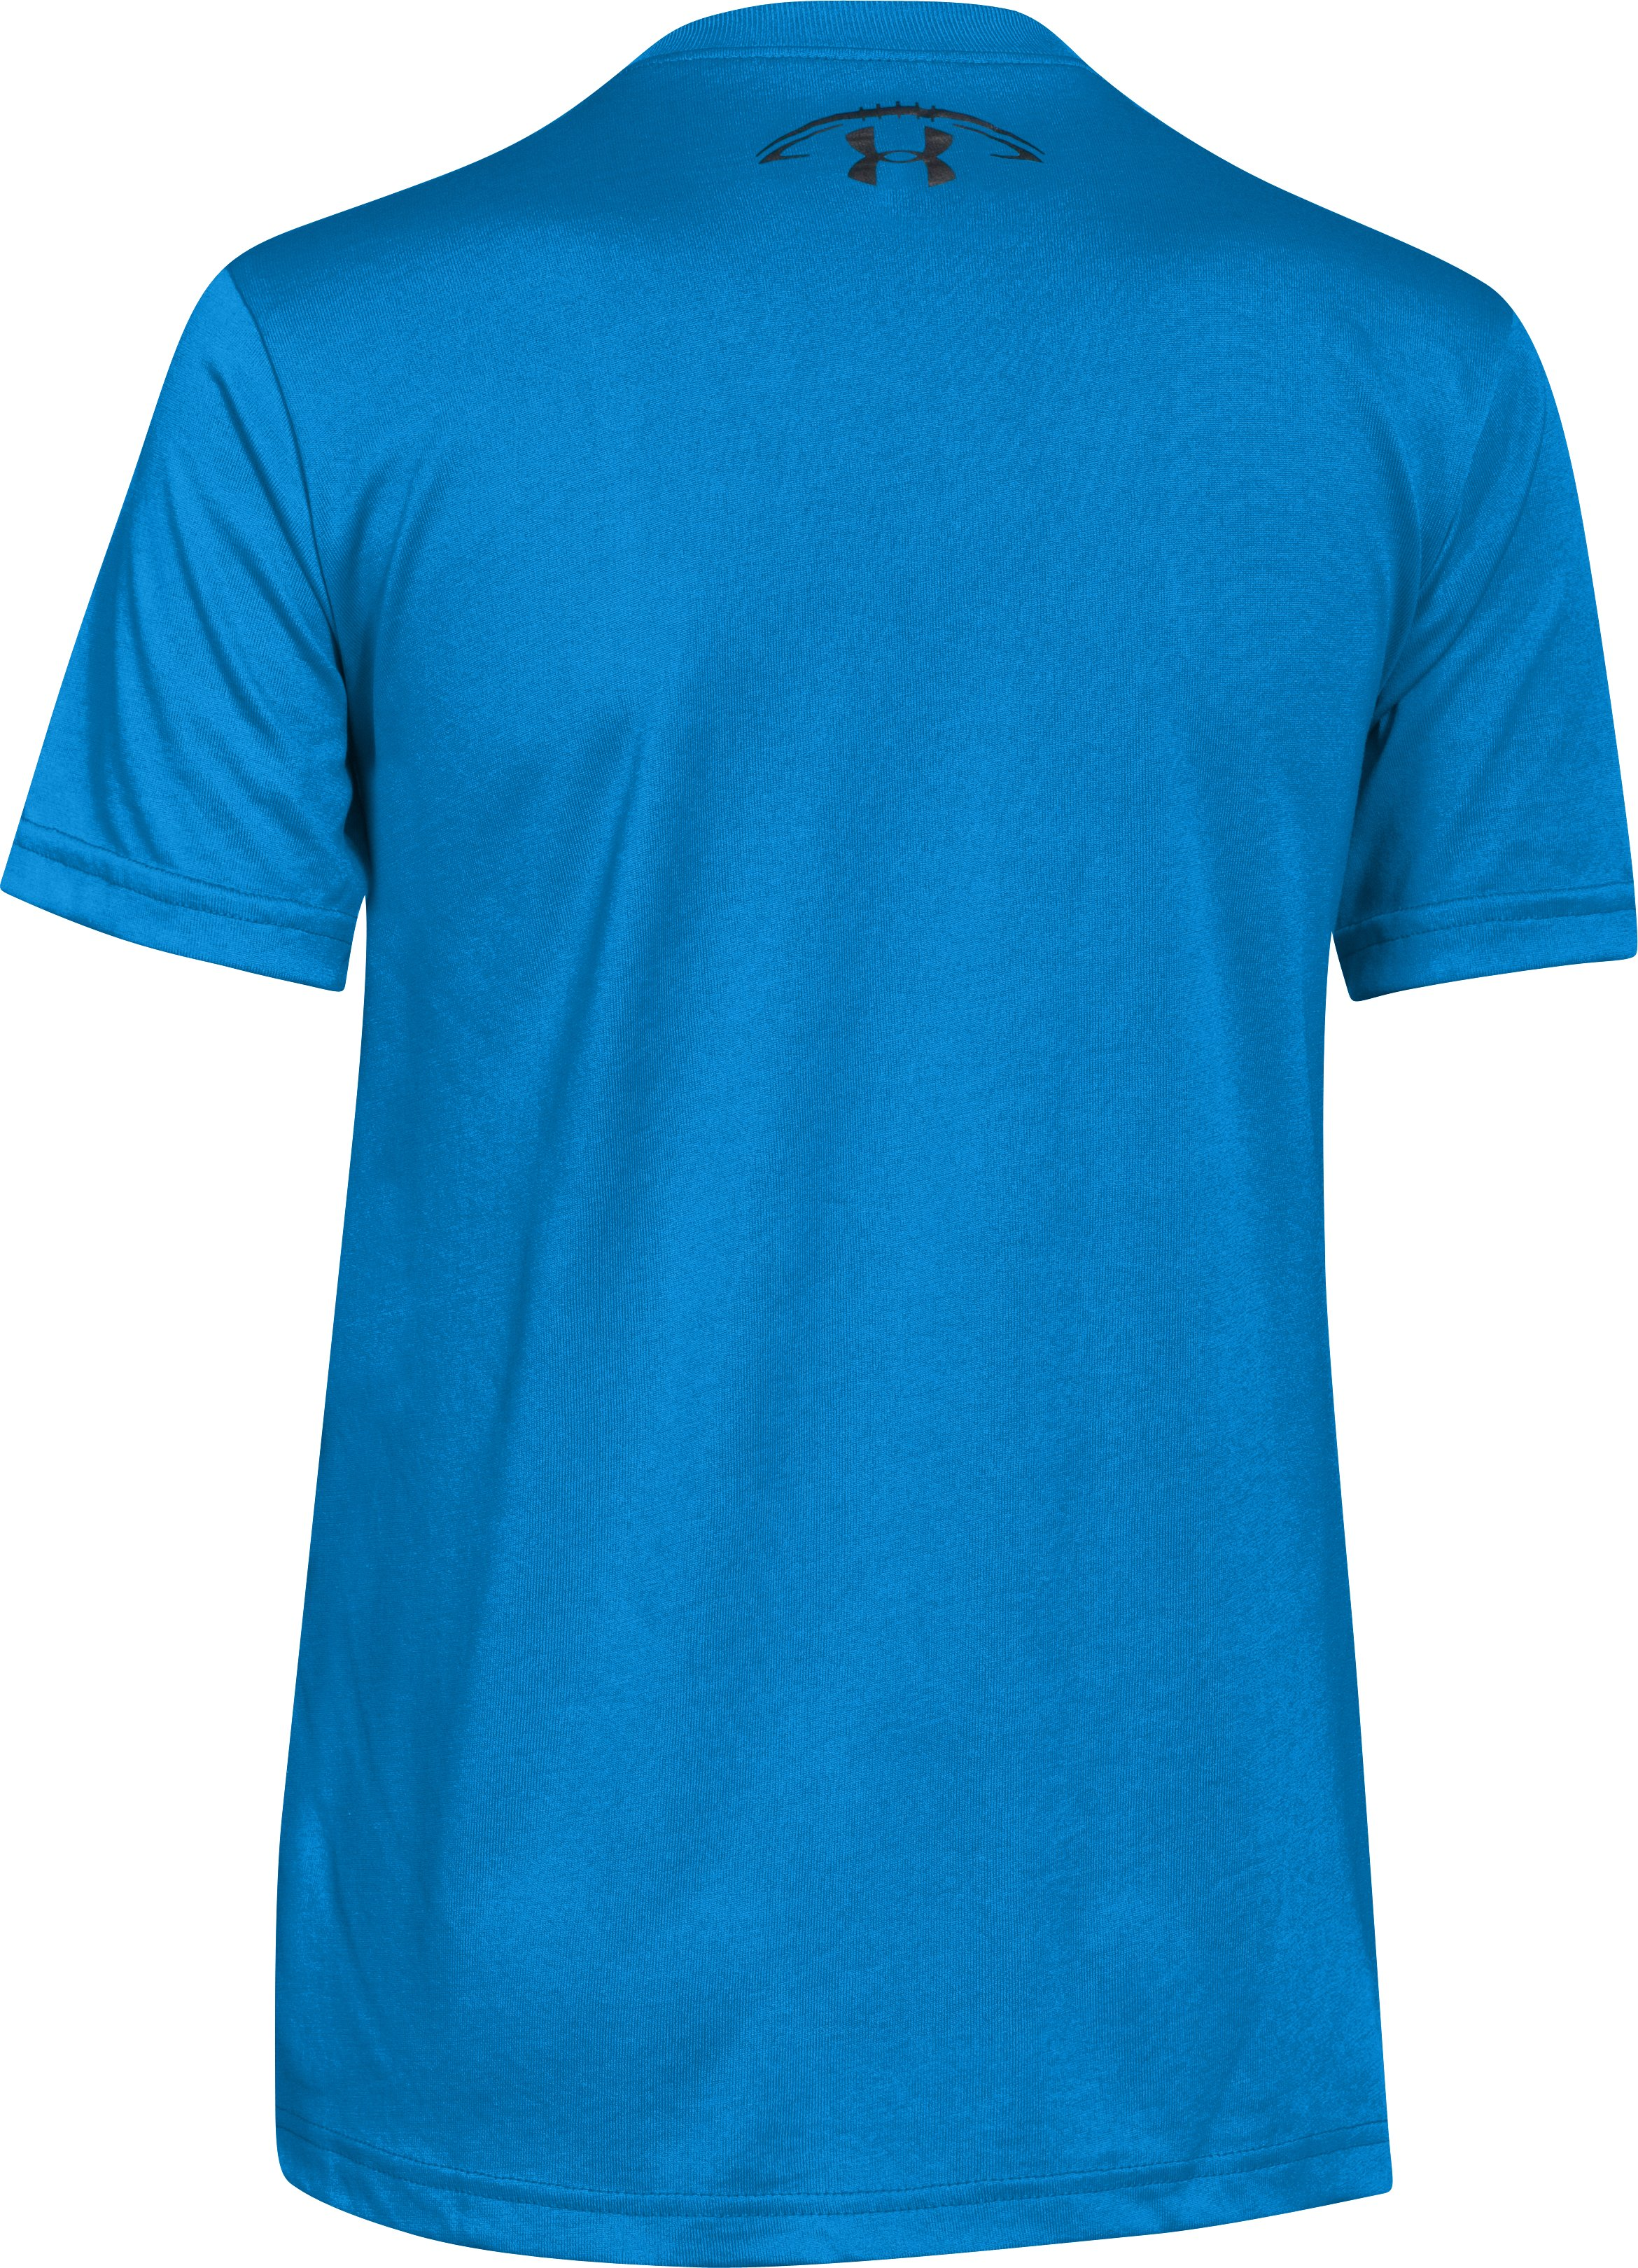 Boys' UA Football Surge T-Shirt, ELECTRIC BLUE, undefined